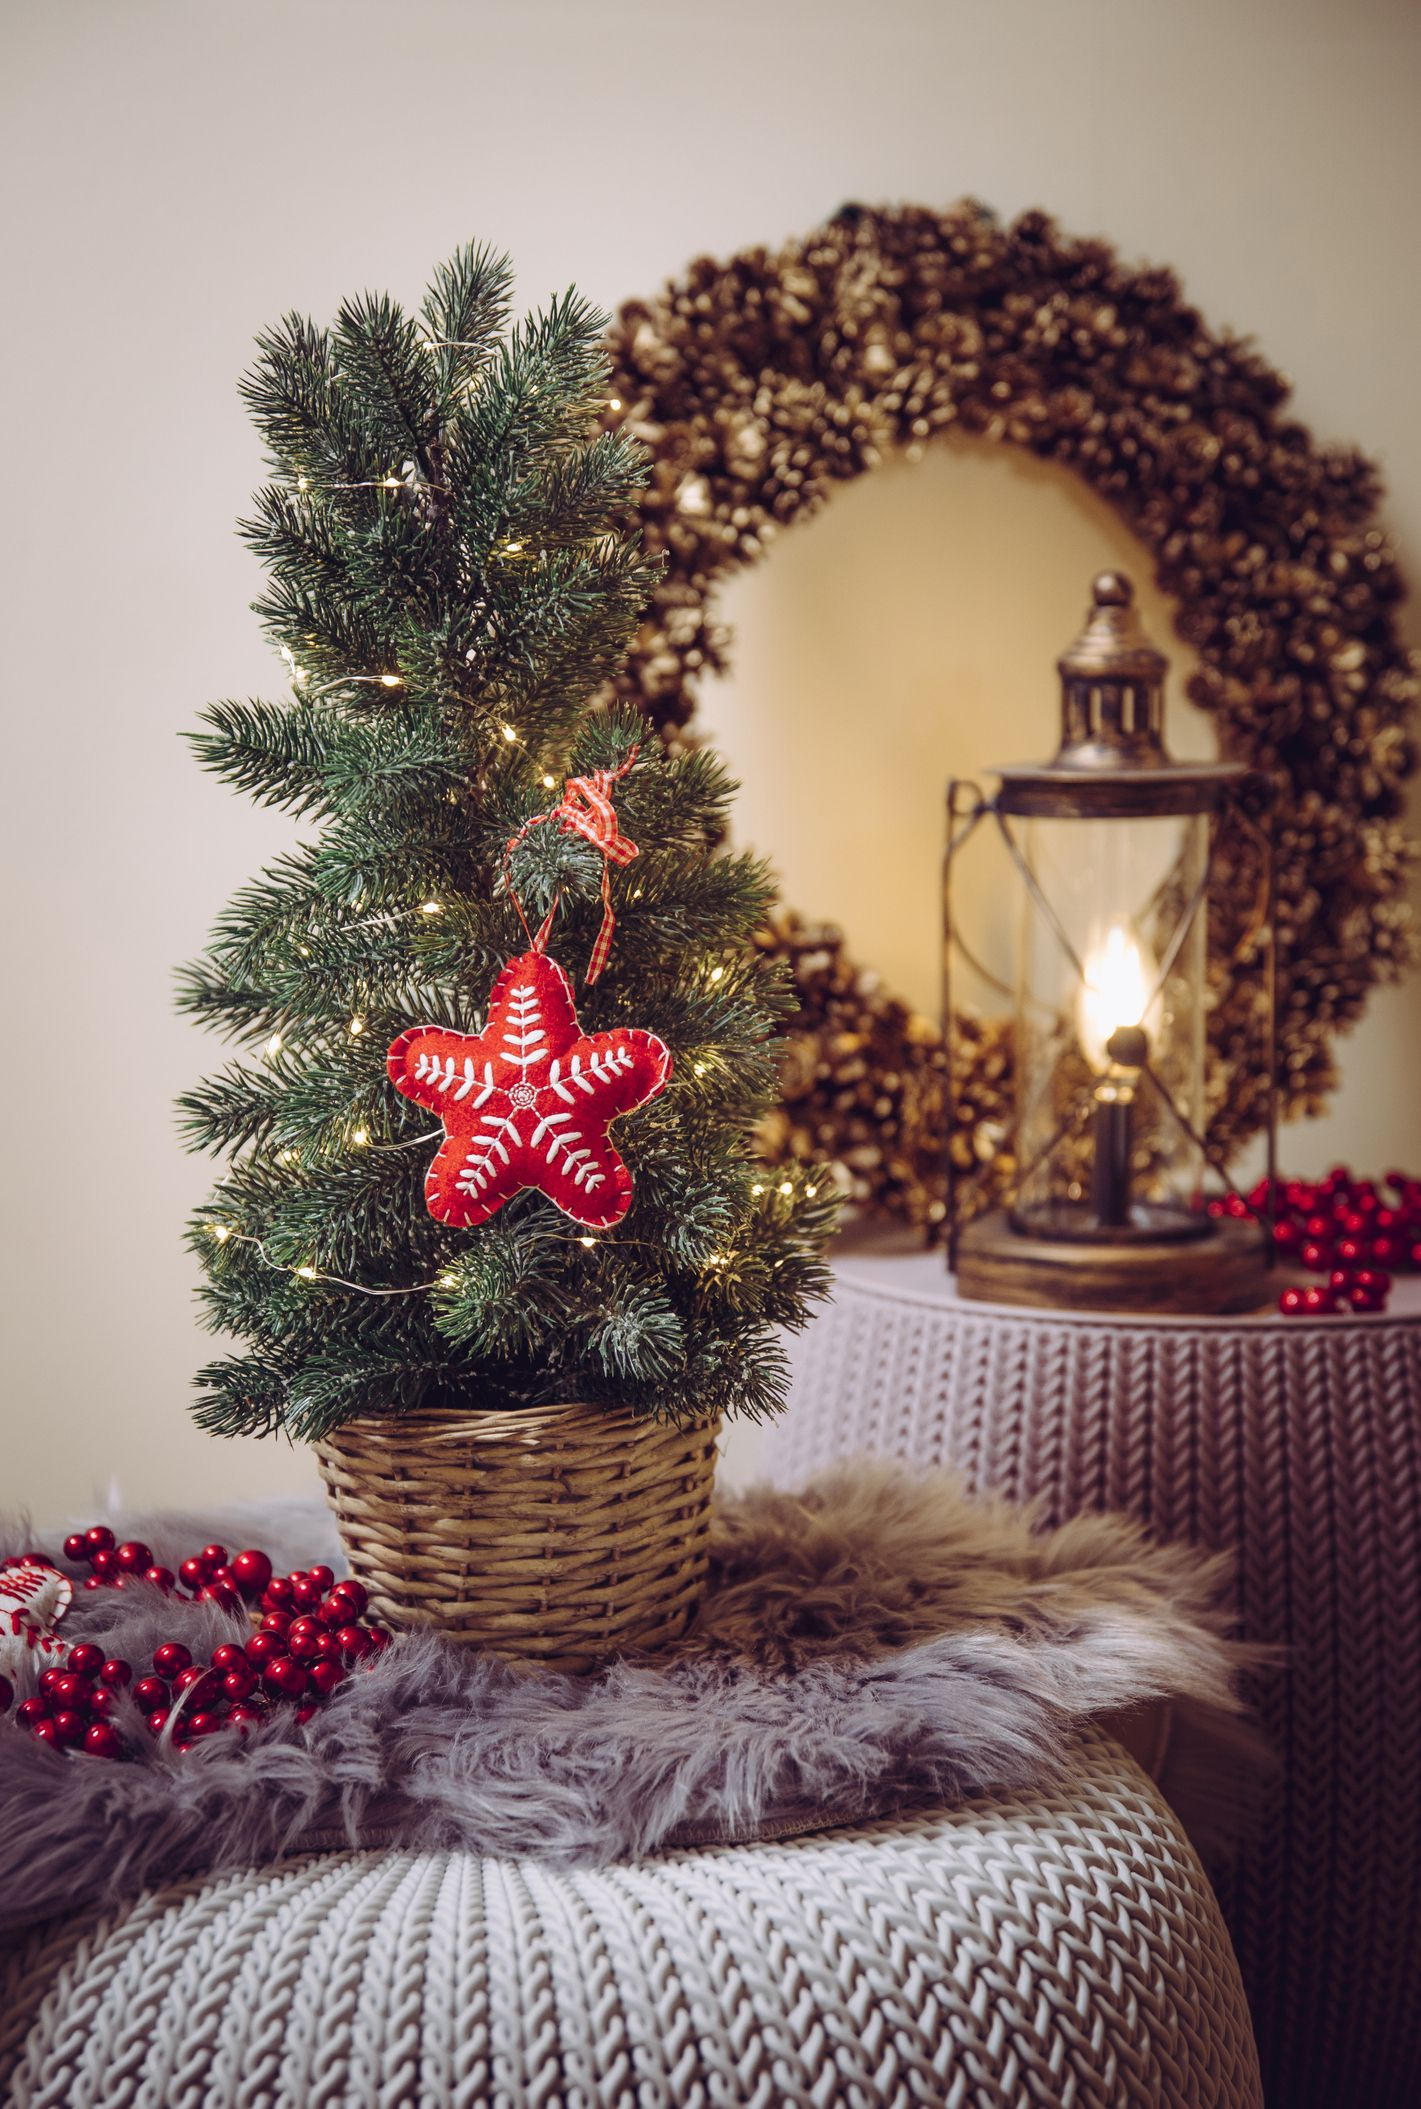 Sunflower Christmas trees and zero-waste decor among biggest Christmas 2019 trends, according to Pinterest